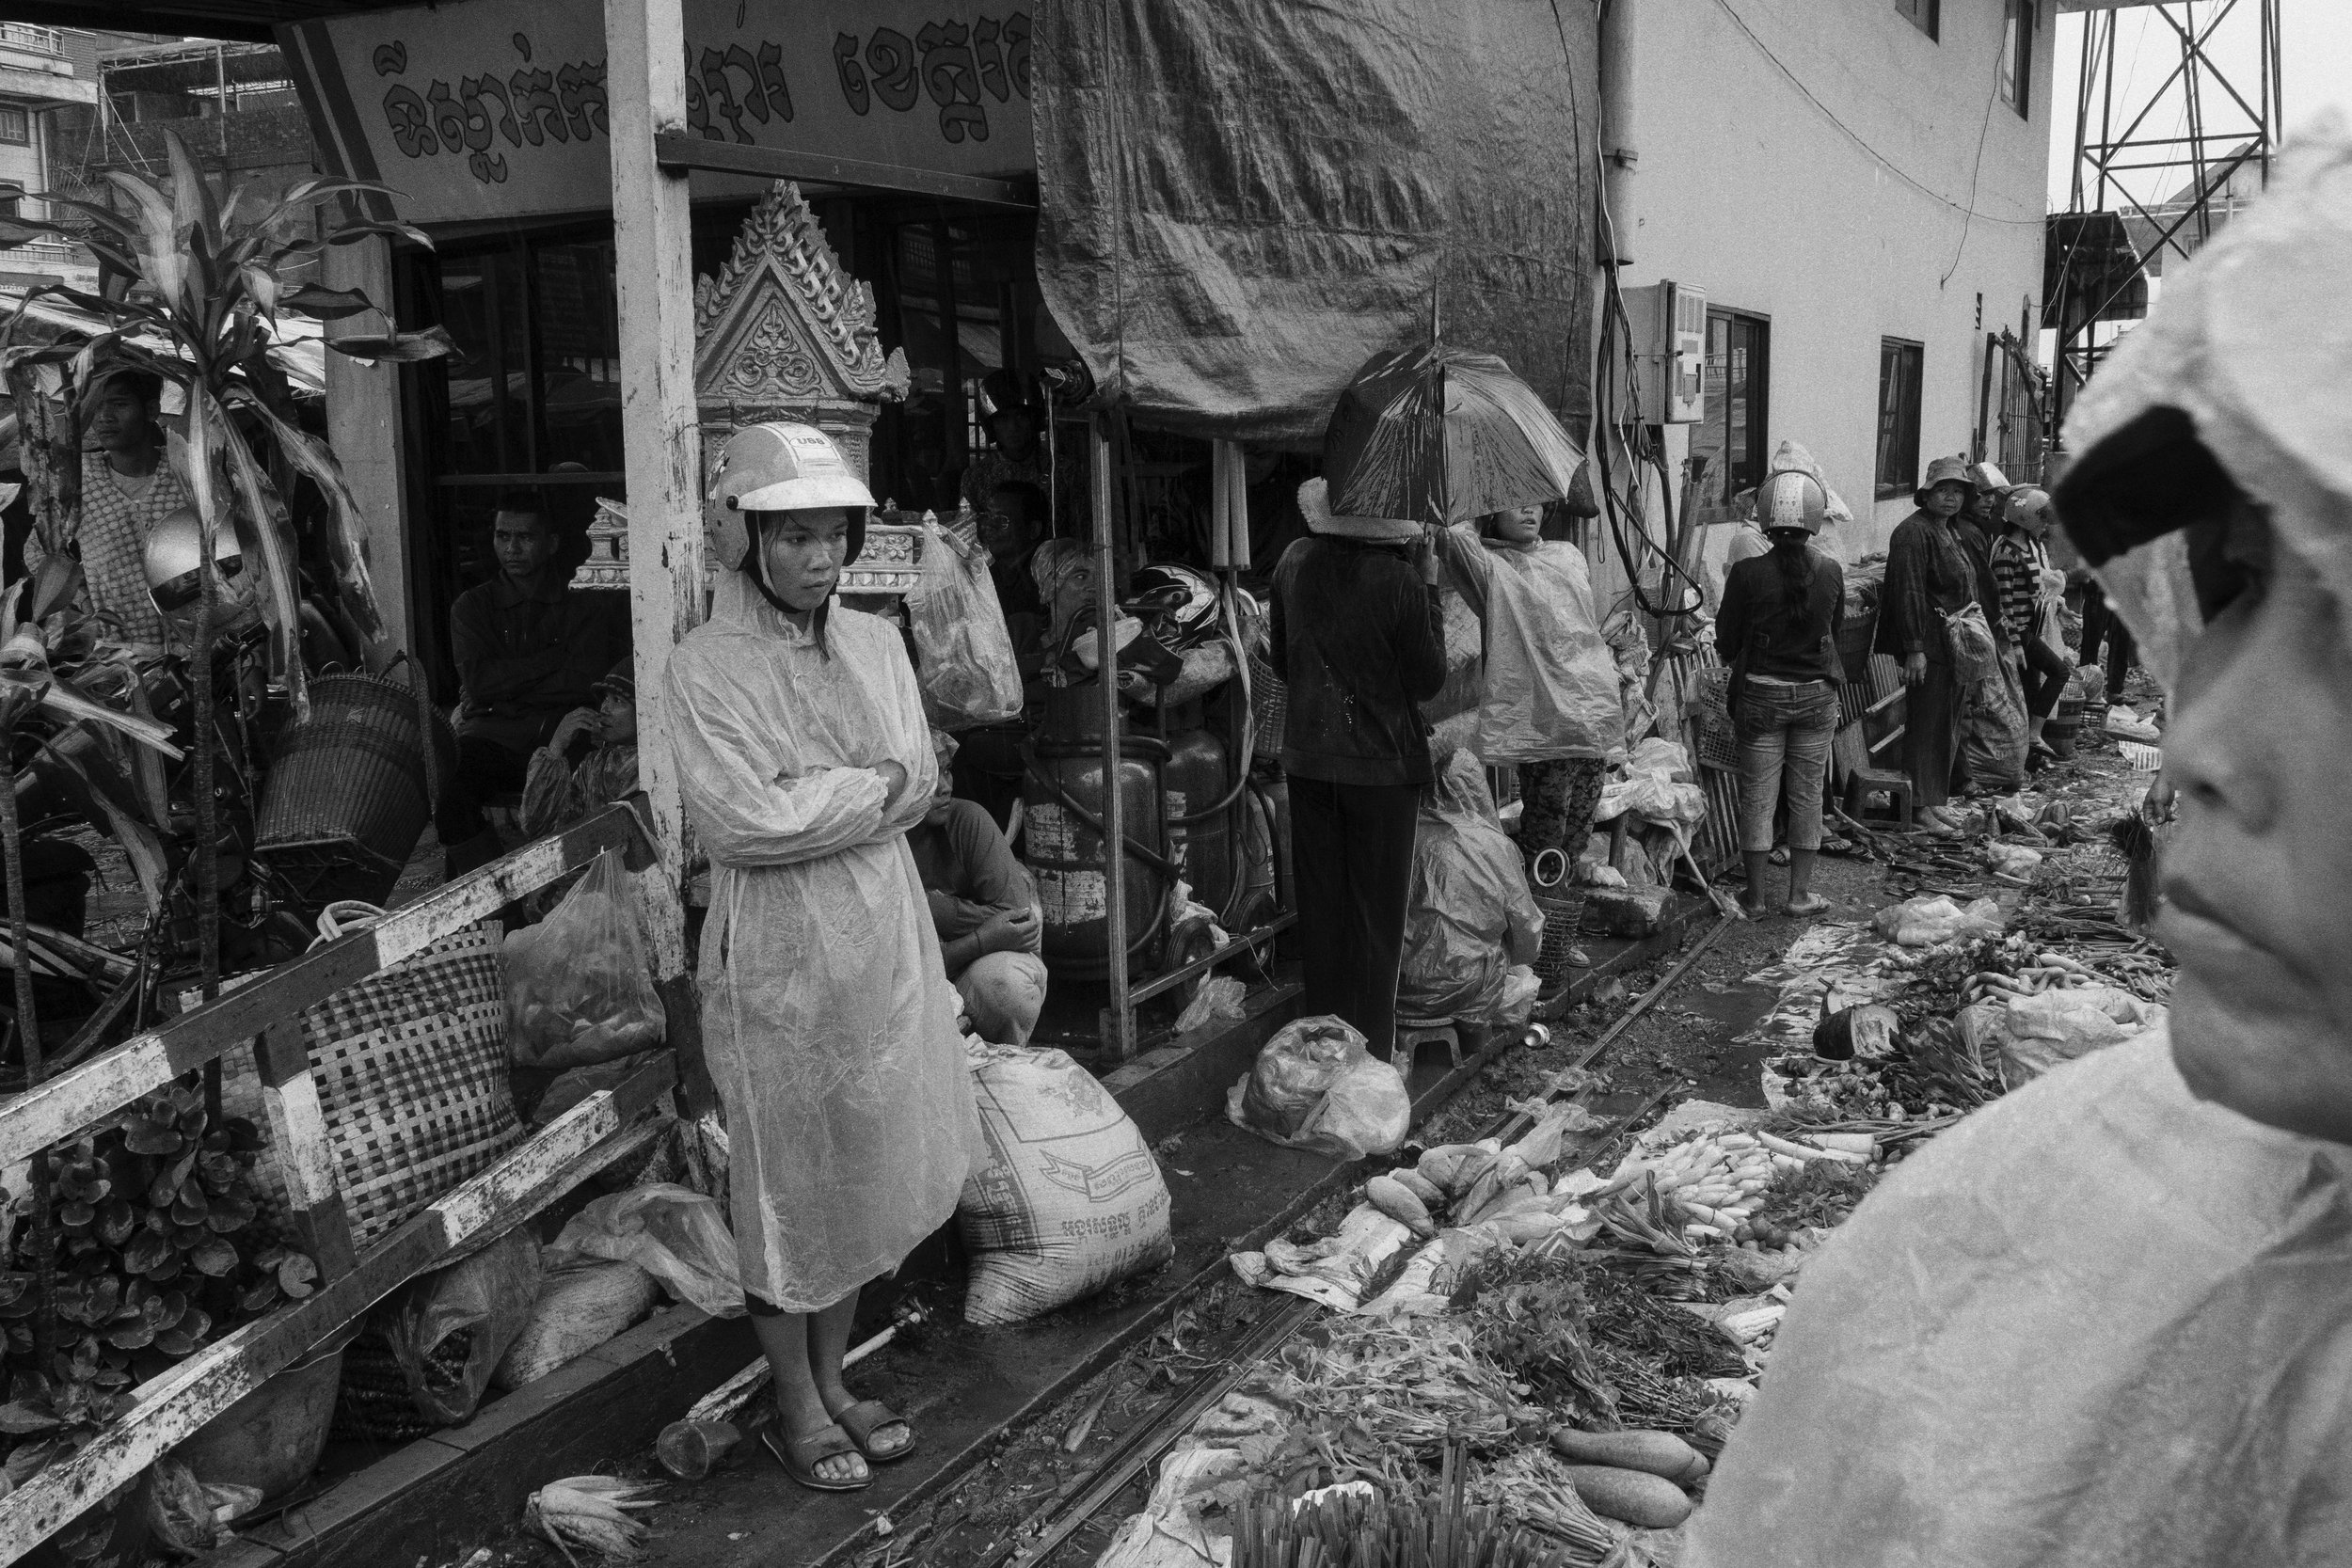 Land Rights of Minorities in Cambodia | Jérôme Sessini